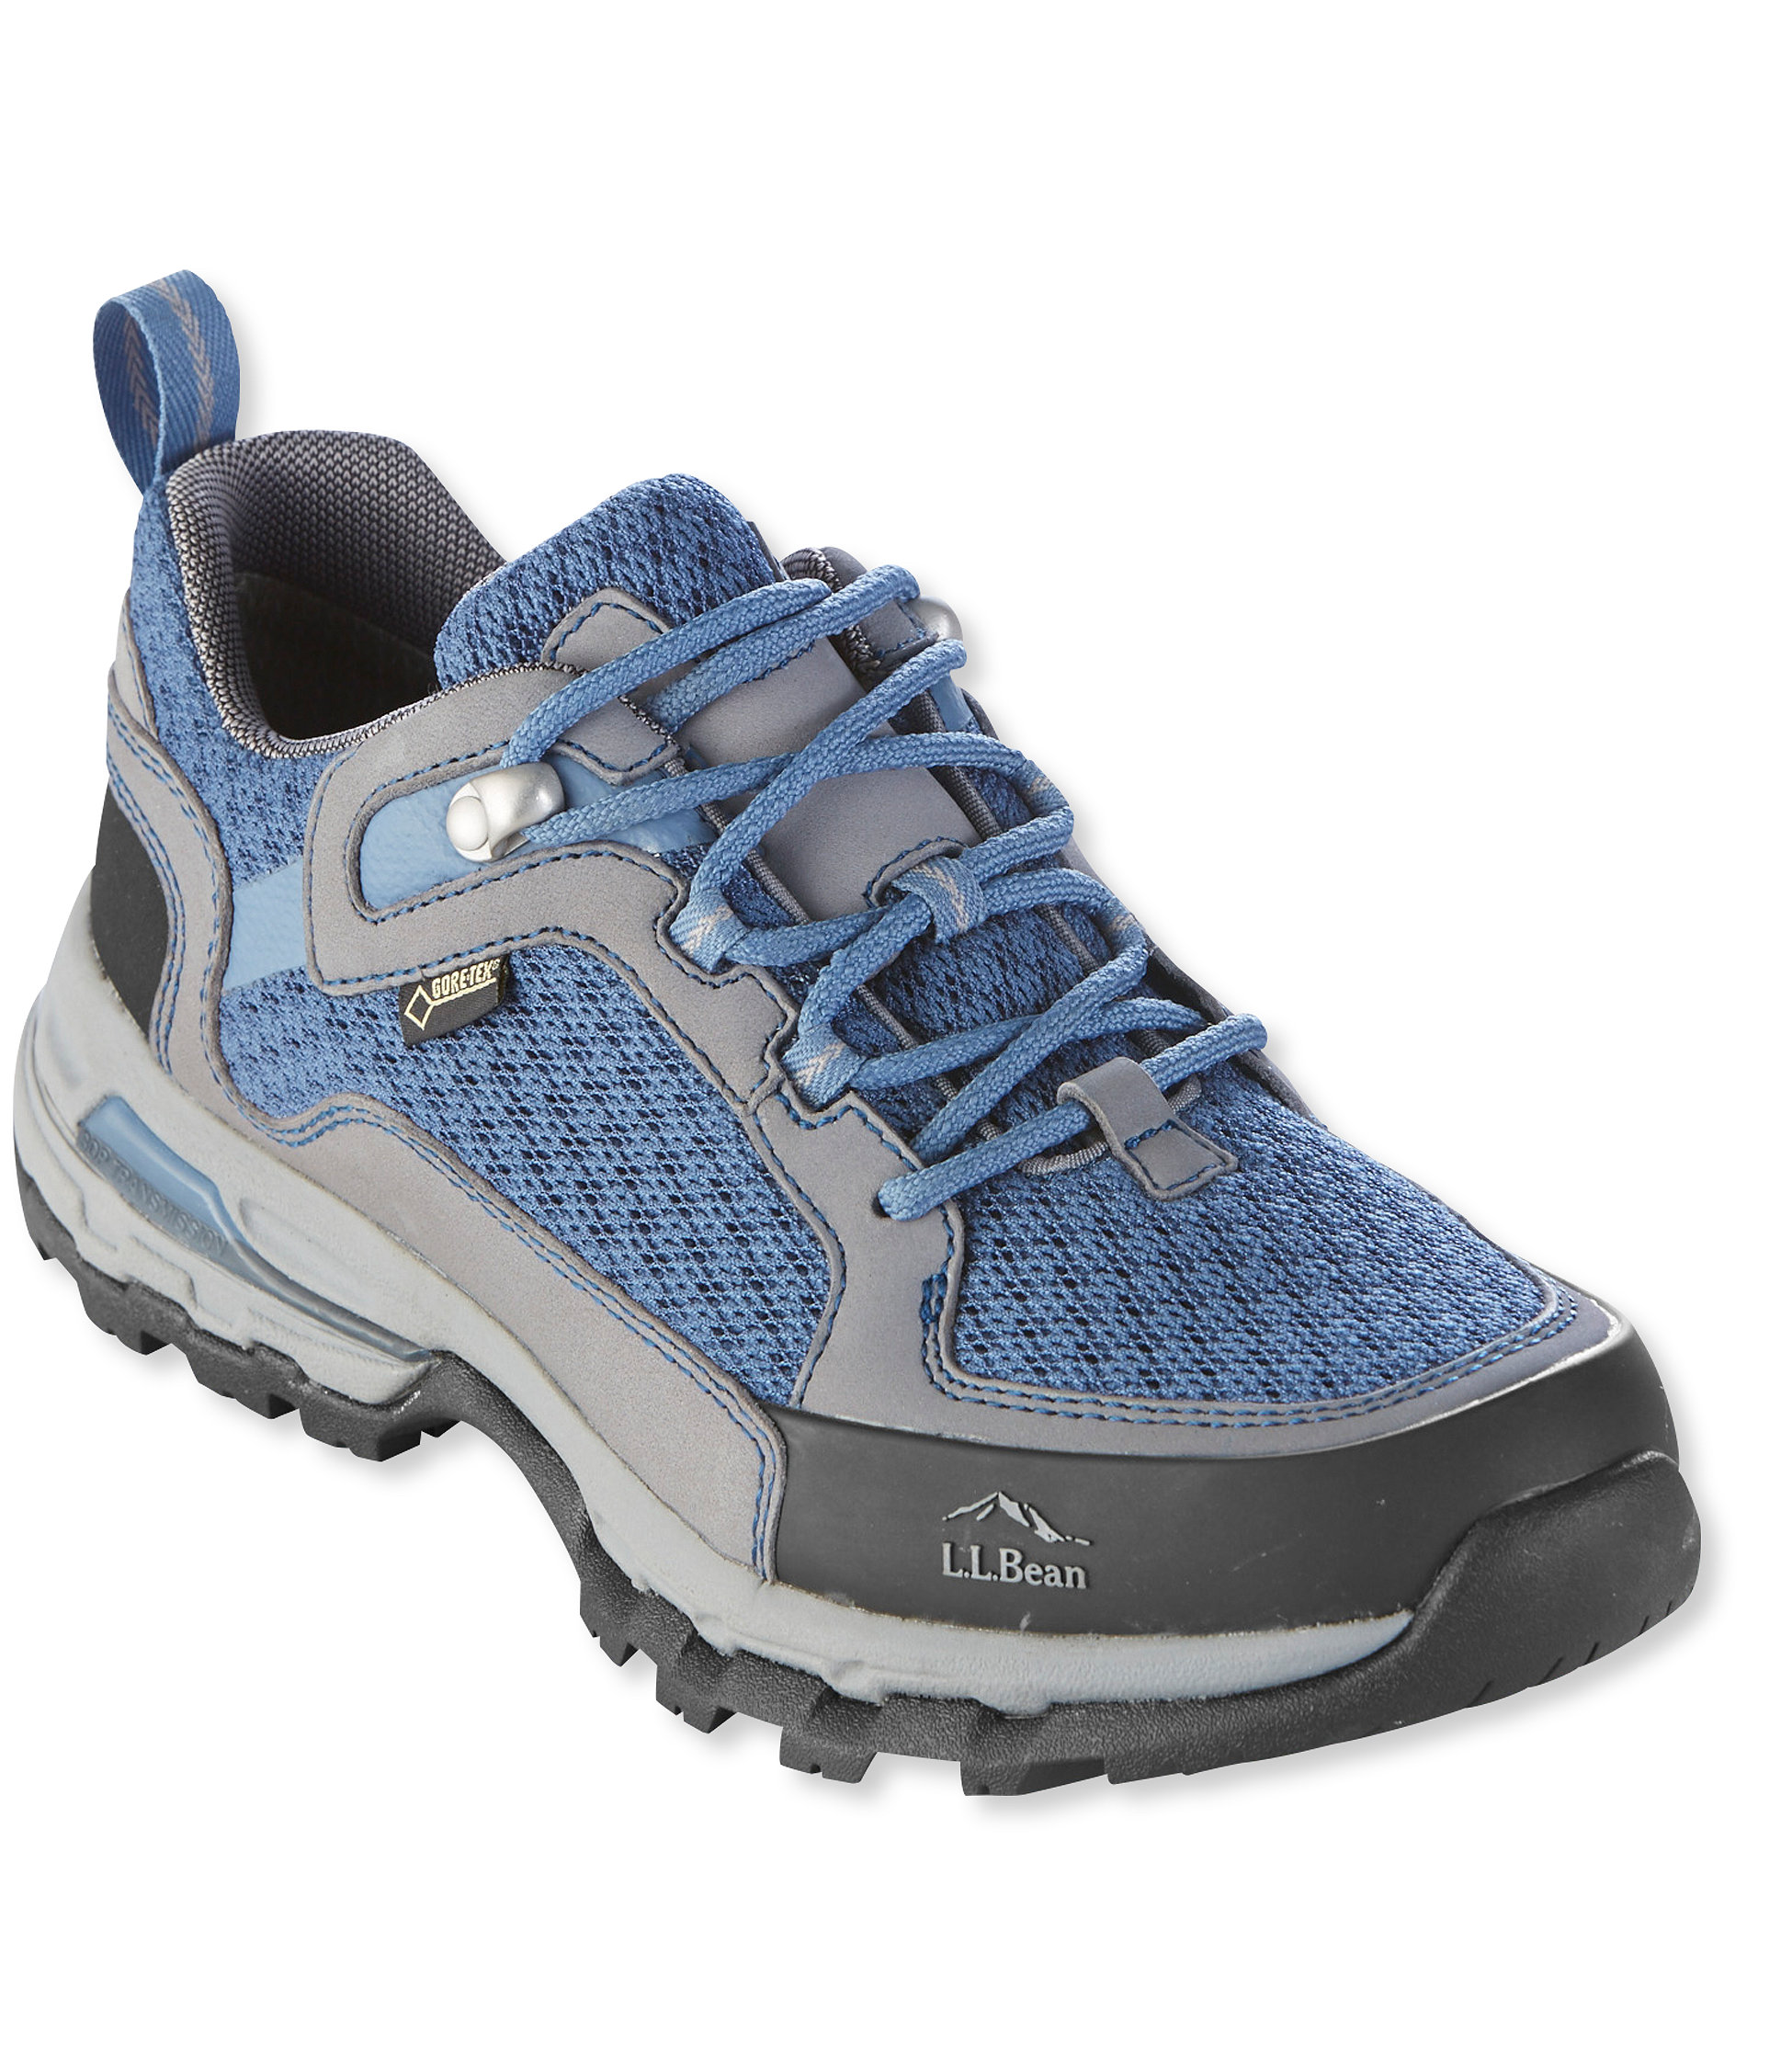 L.L.Bean Ascender 2 Gore-Tex Hiking Shoes